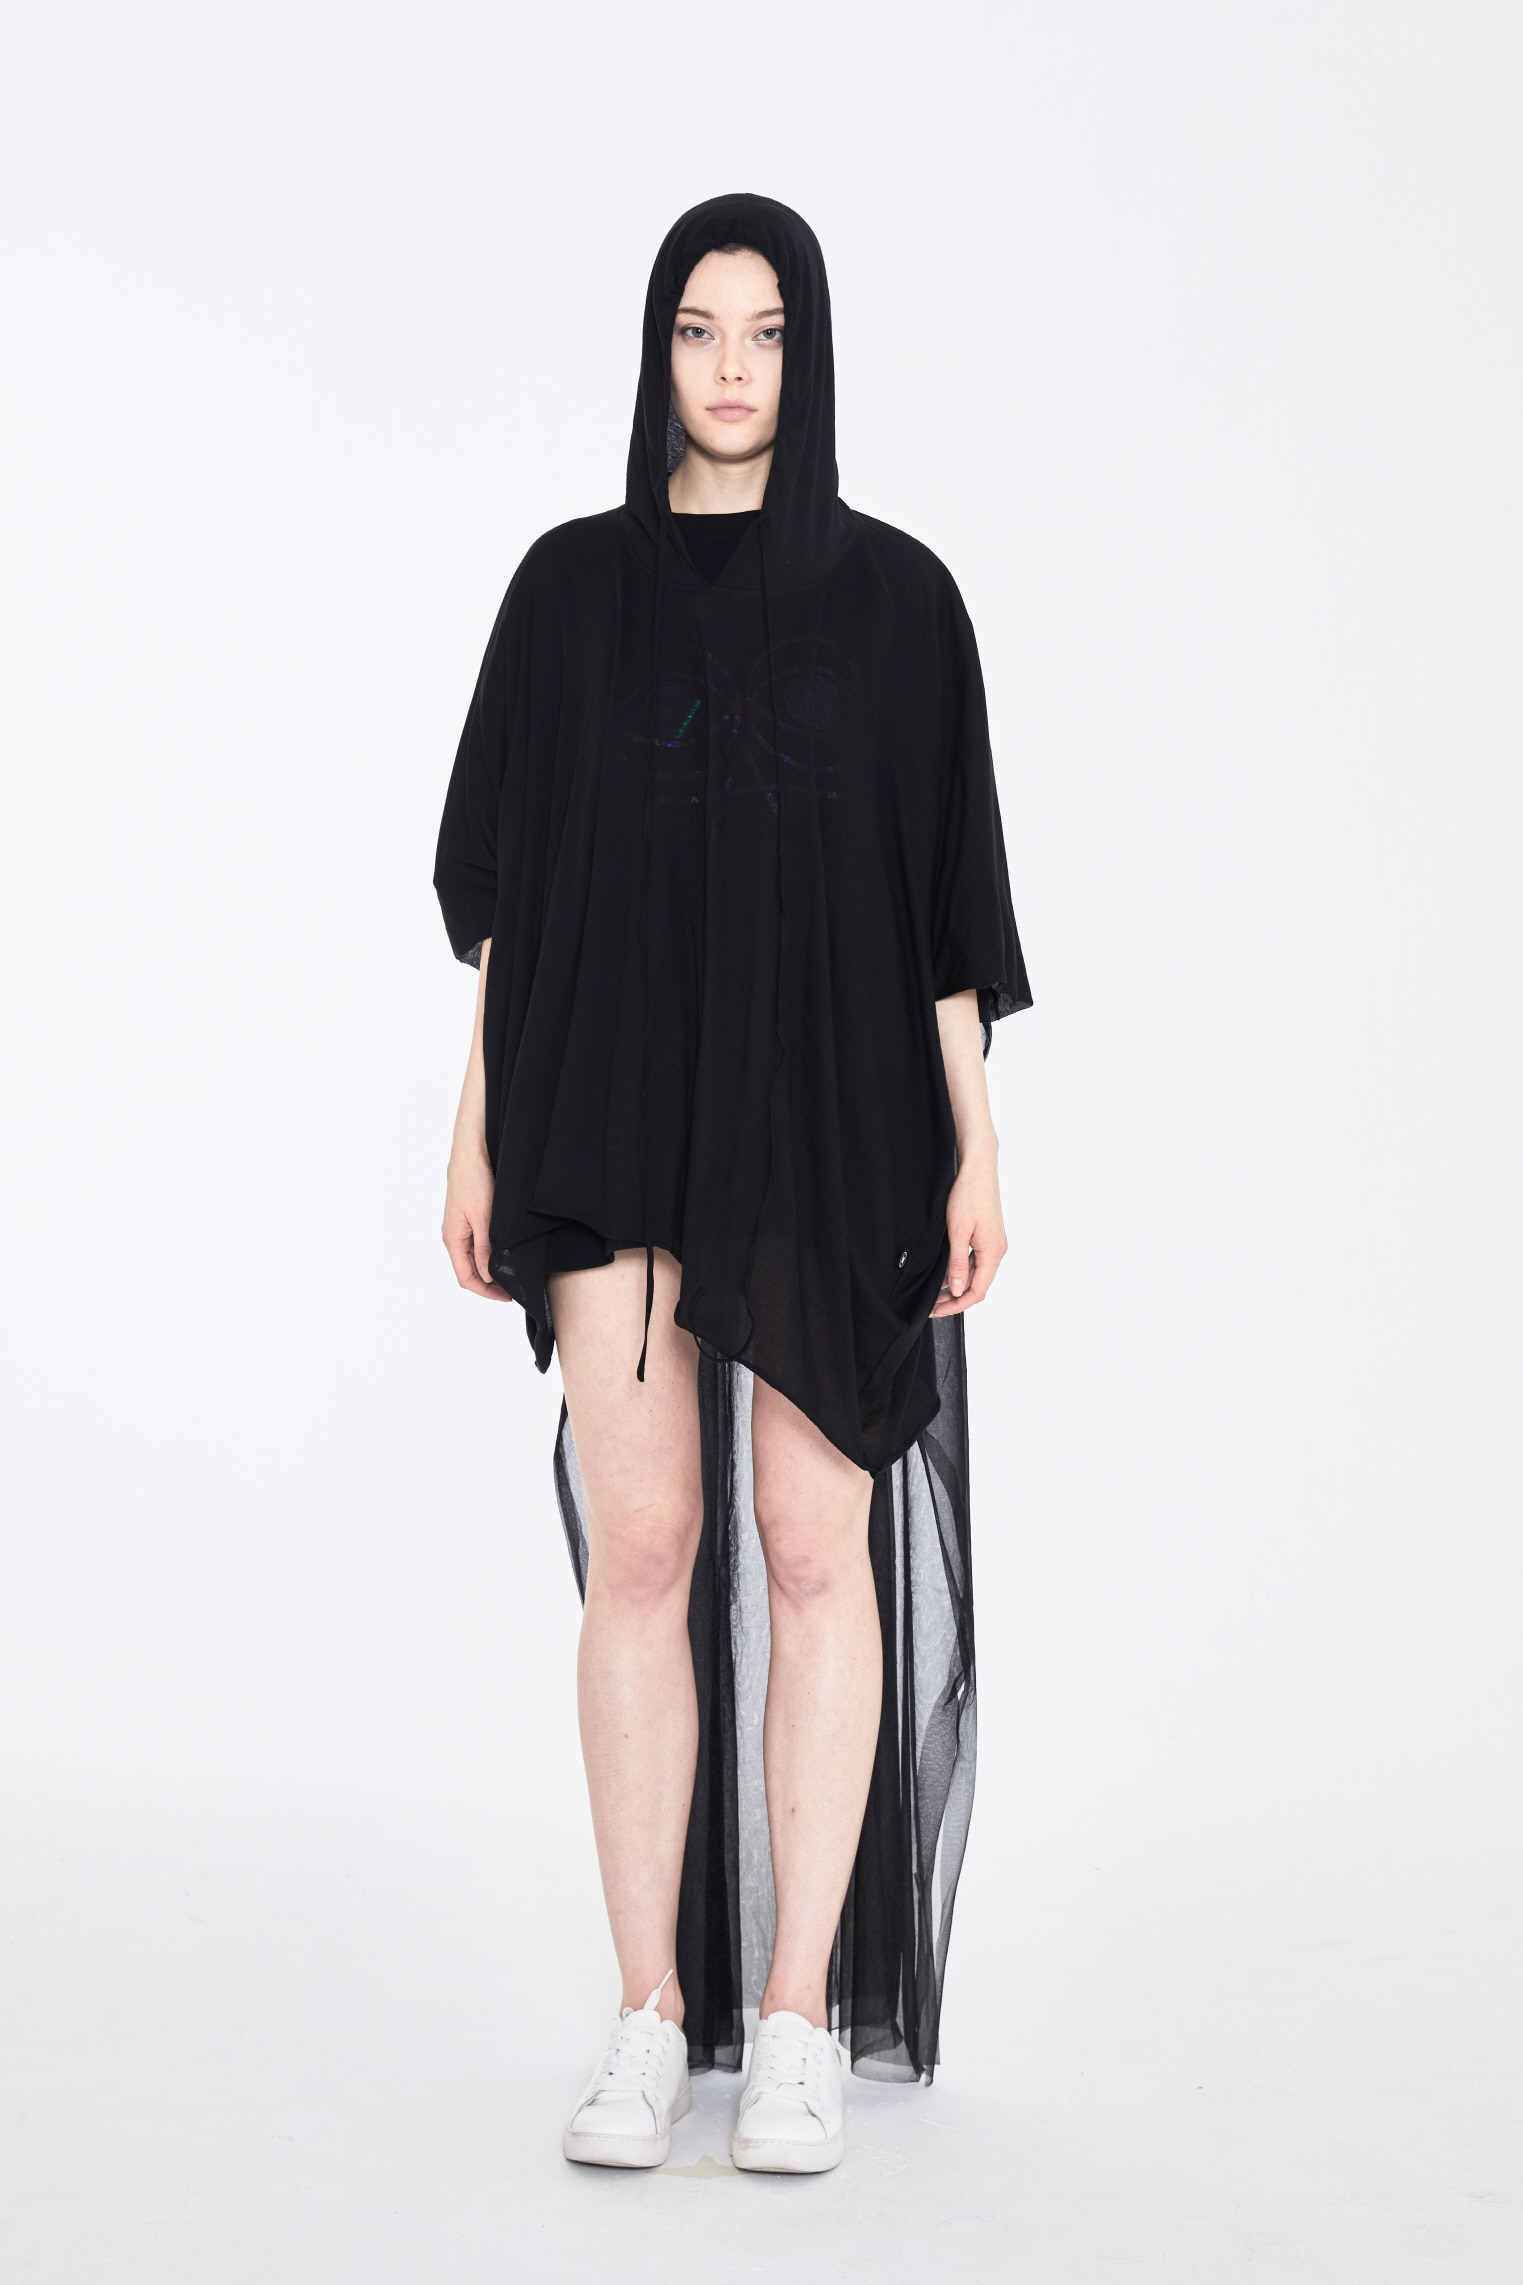 S/S19 DUBAE DOUBLE HOODI DRESS